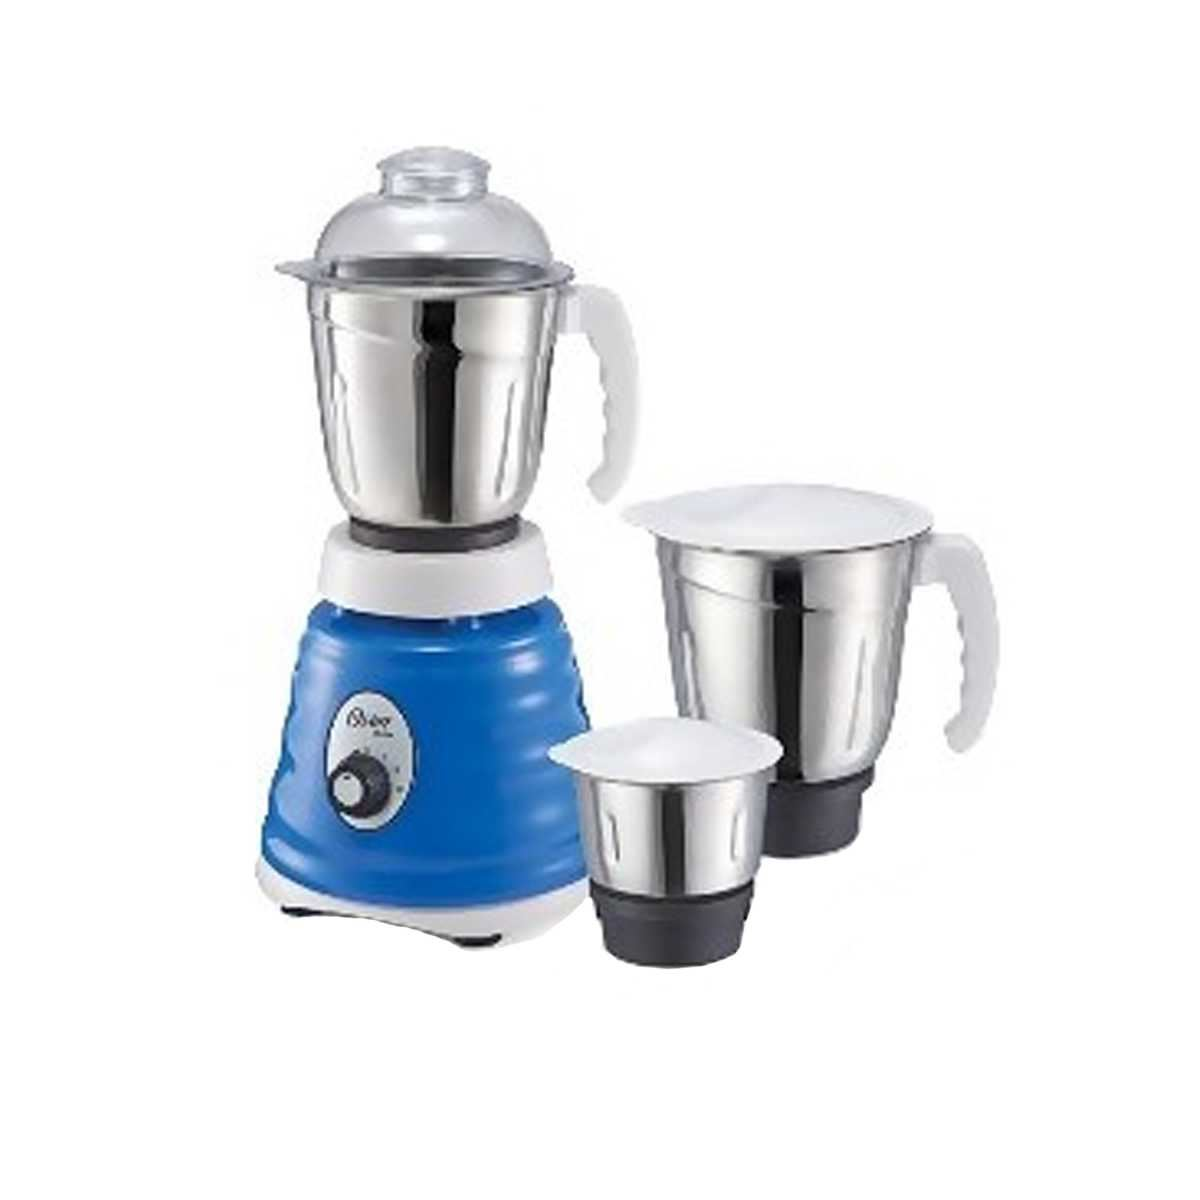 Picture of Oster Mixer Grinder MGSTSL8010